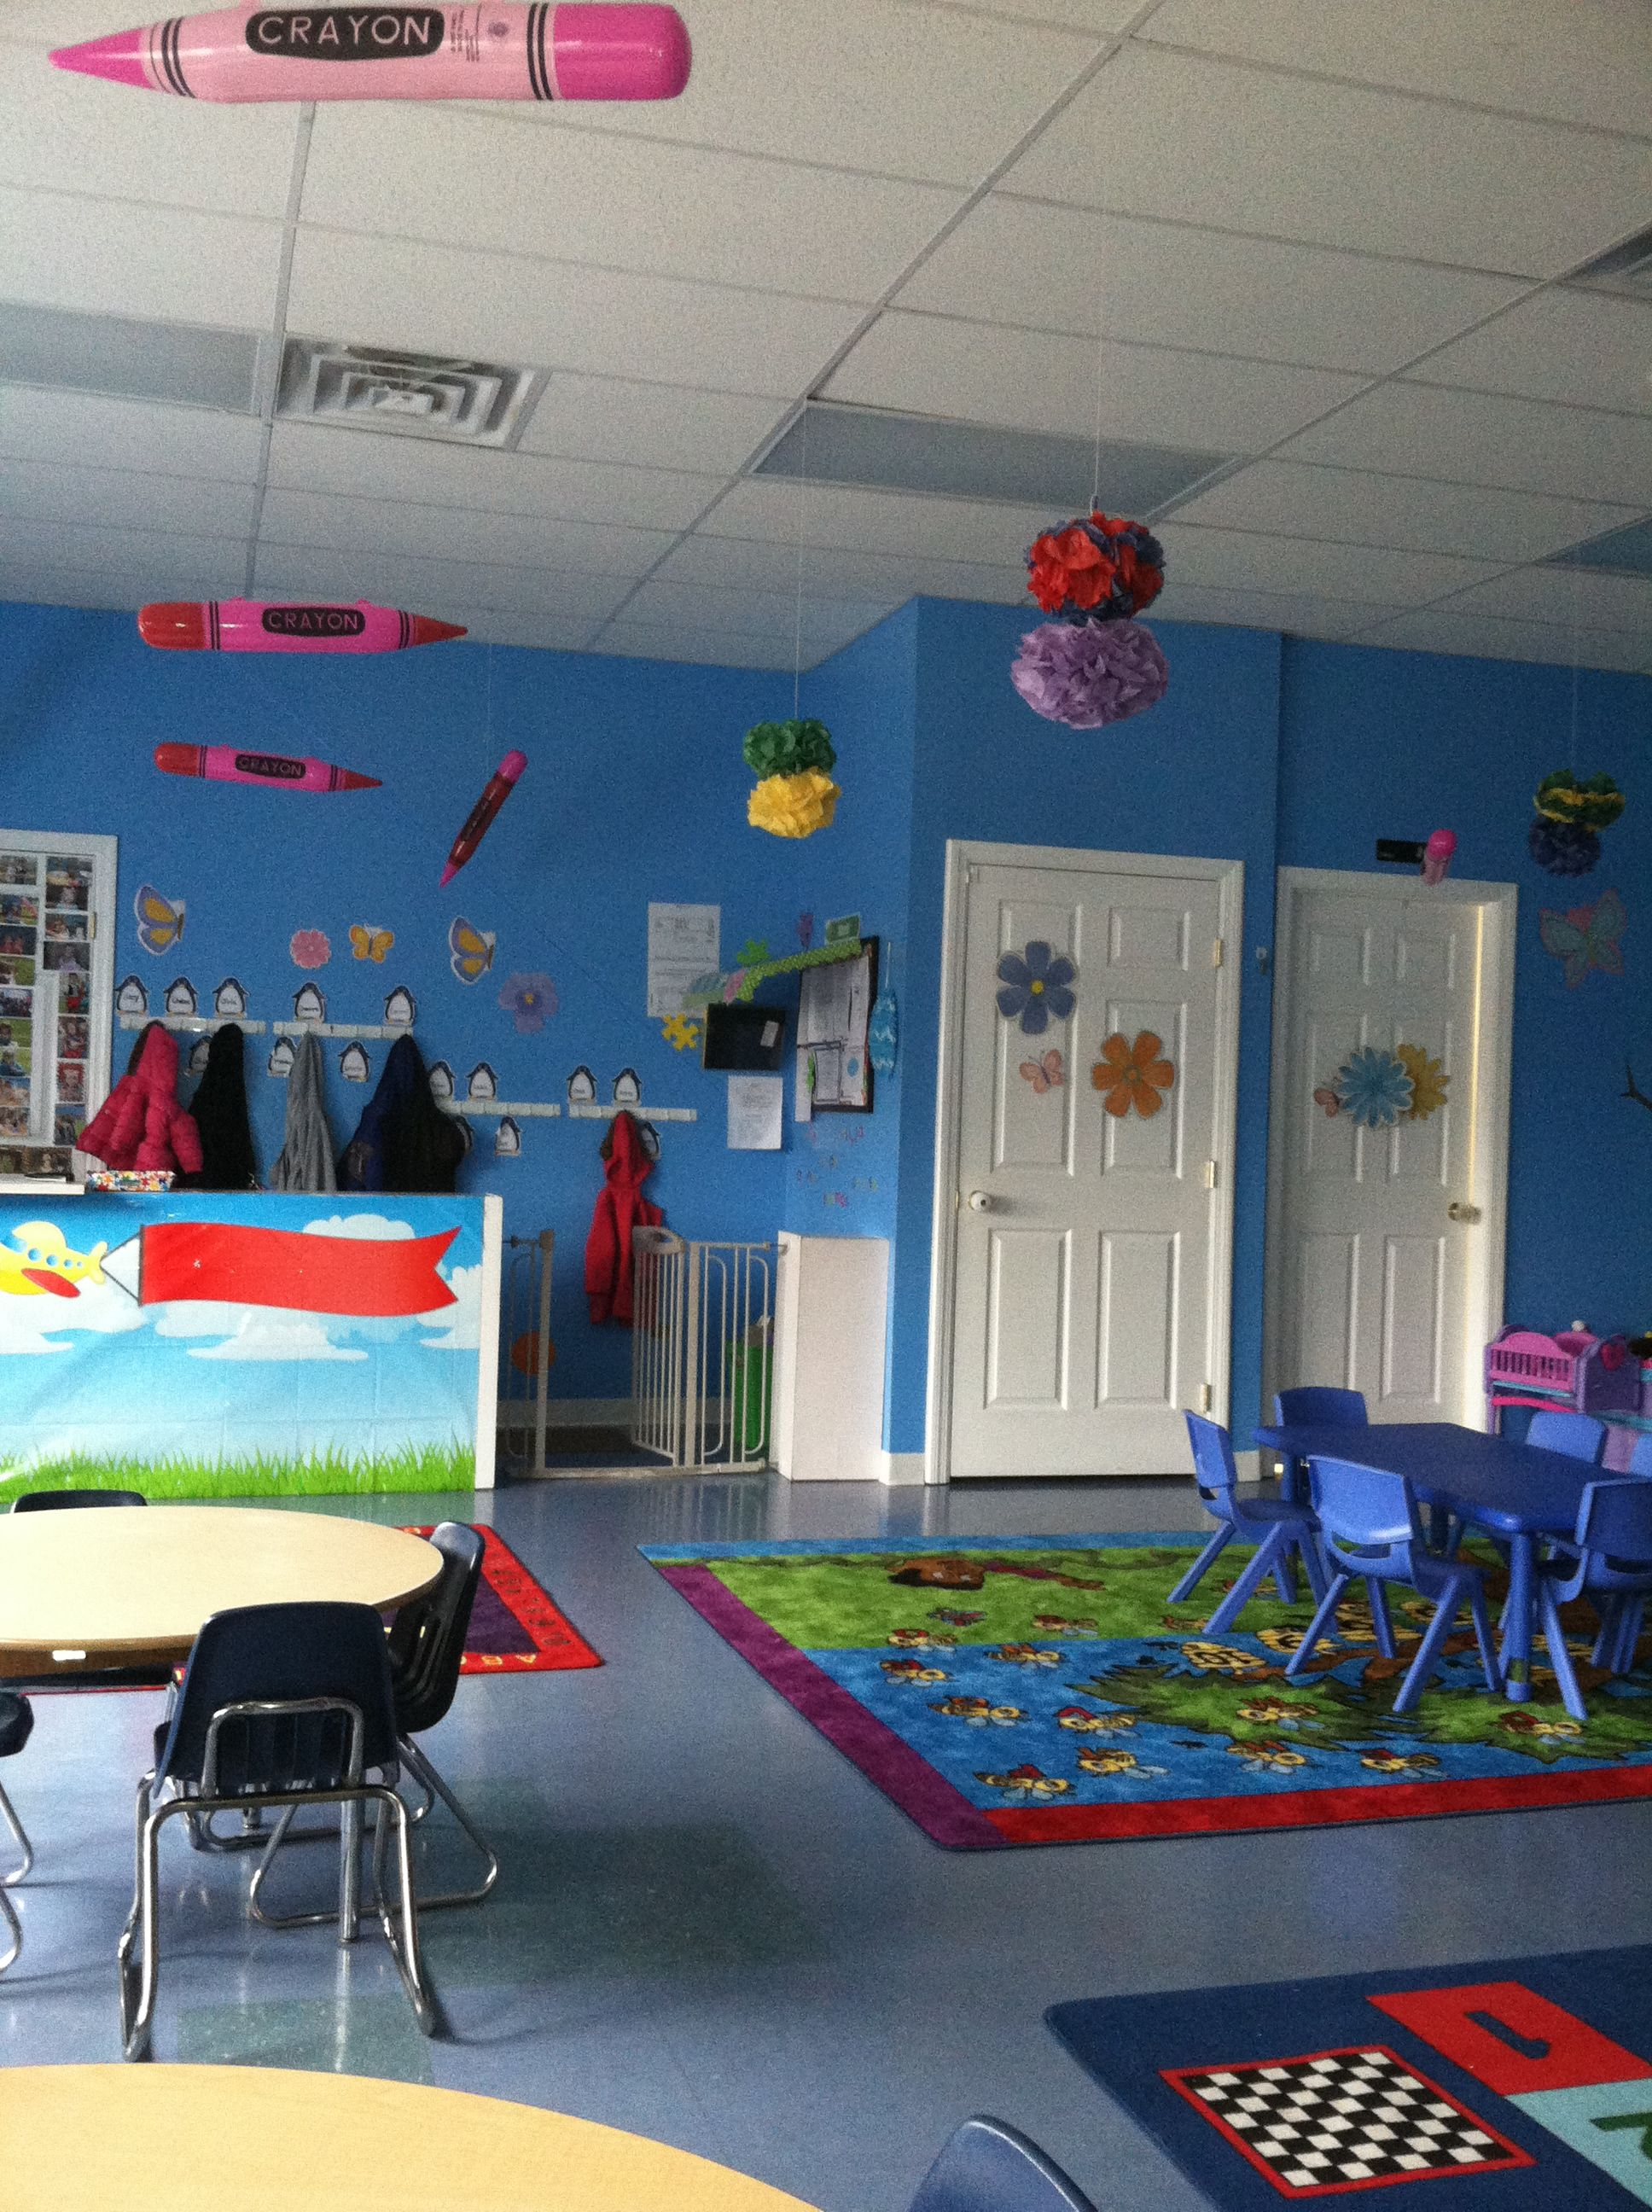 Daycare Decor Home Daycare: Daycare Classroom Decoration